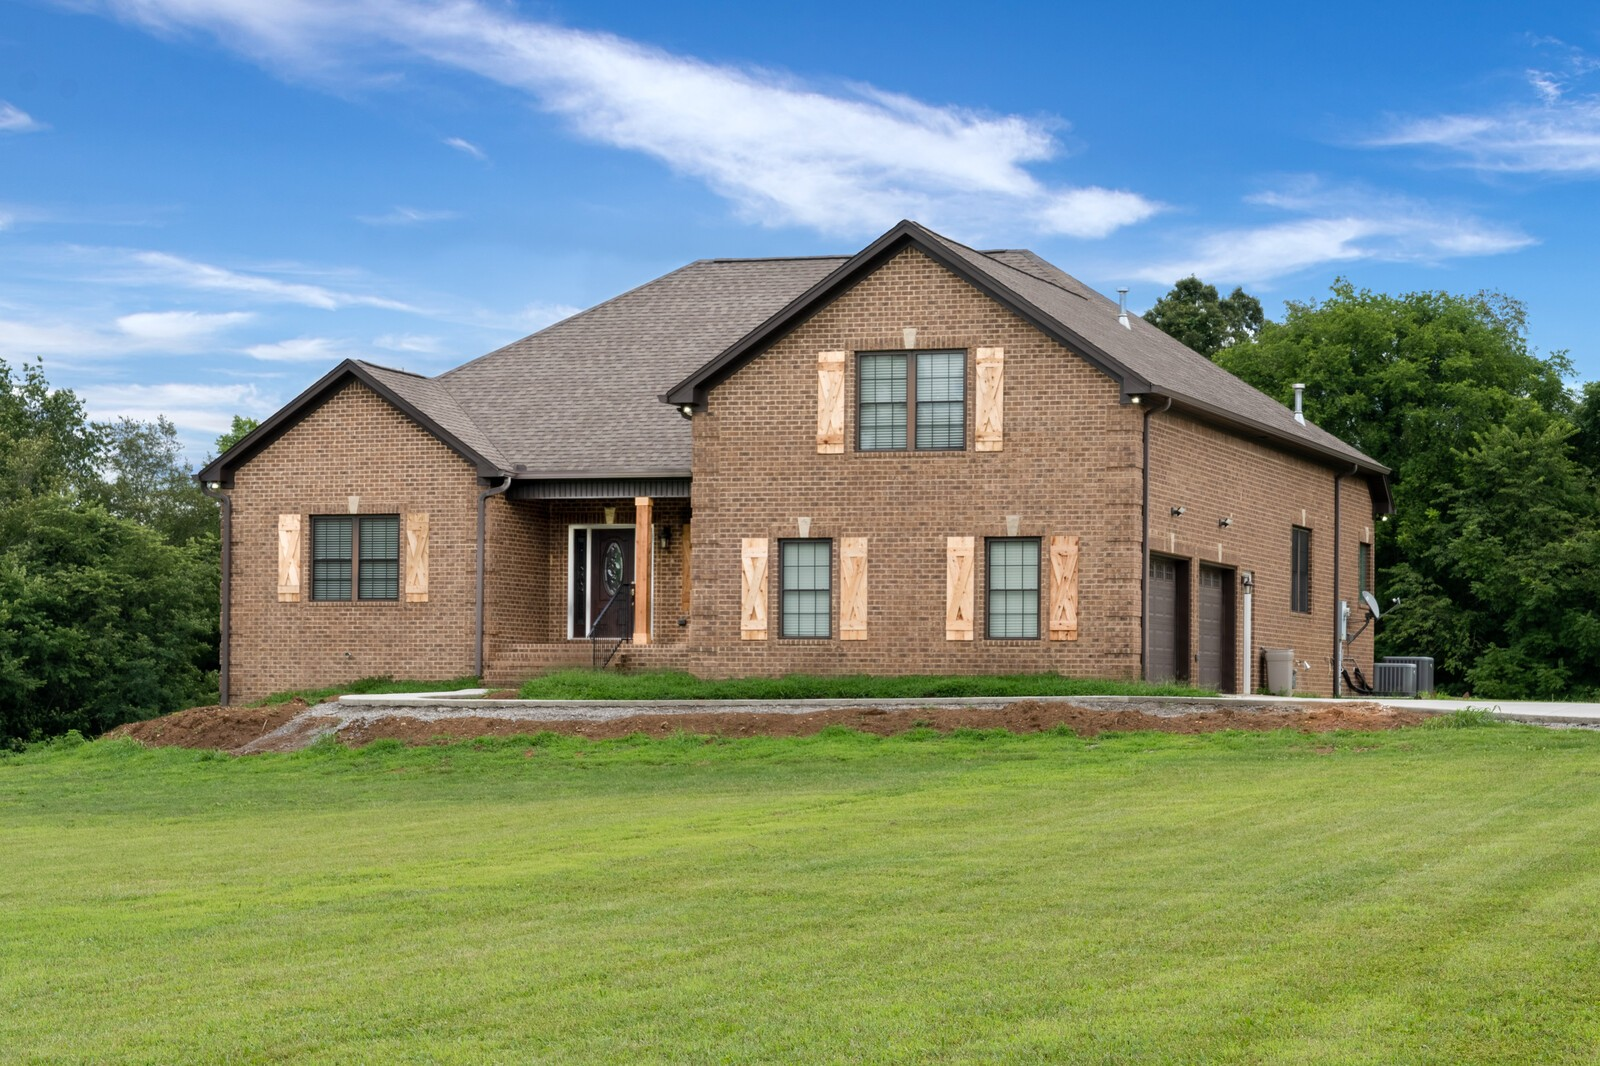 9395 Cross Plains Rd Property Photo - White House, TN real estate listing